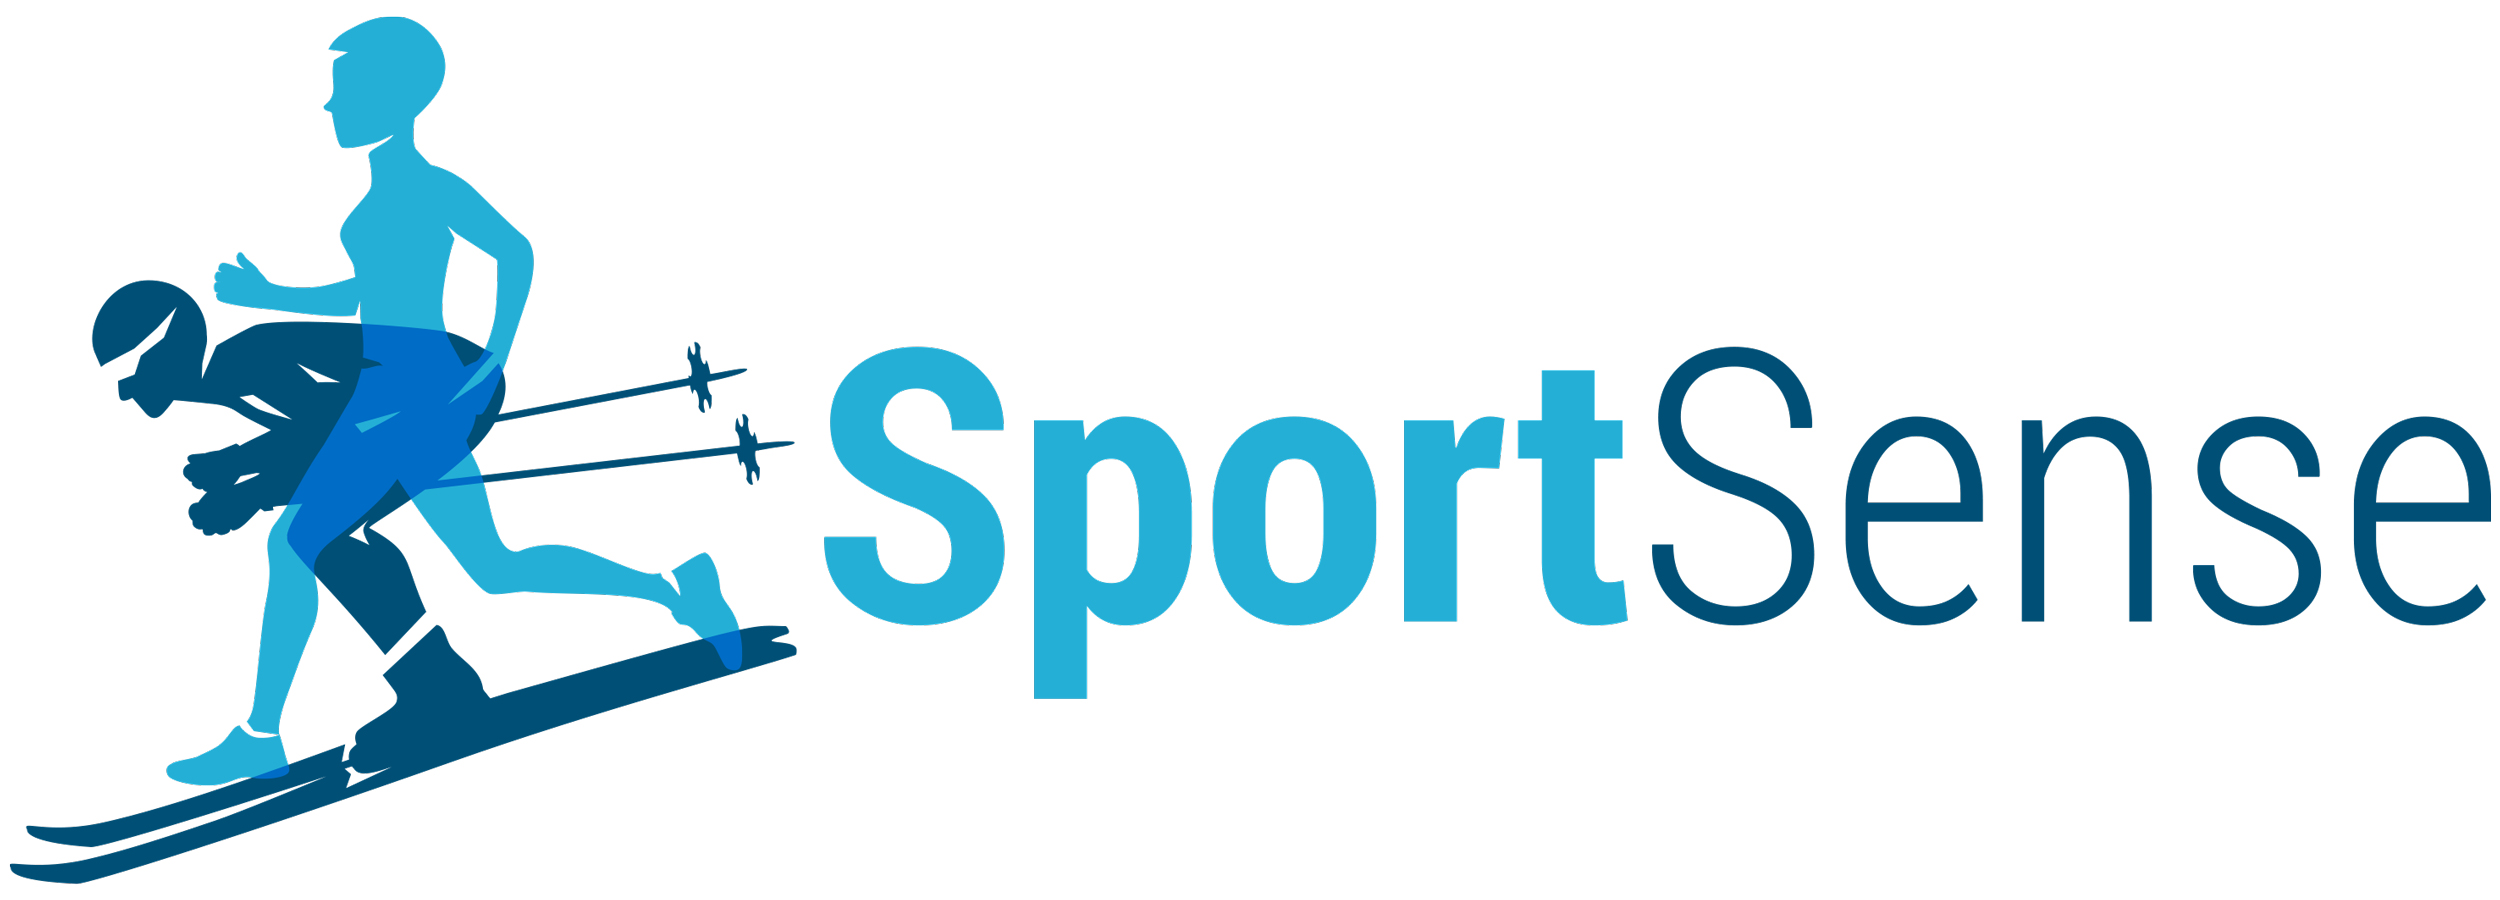 Sports sites - only relevant information